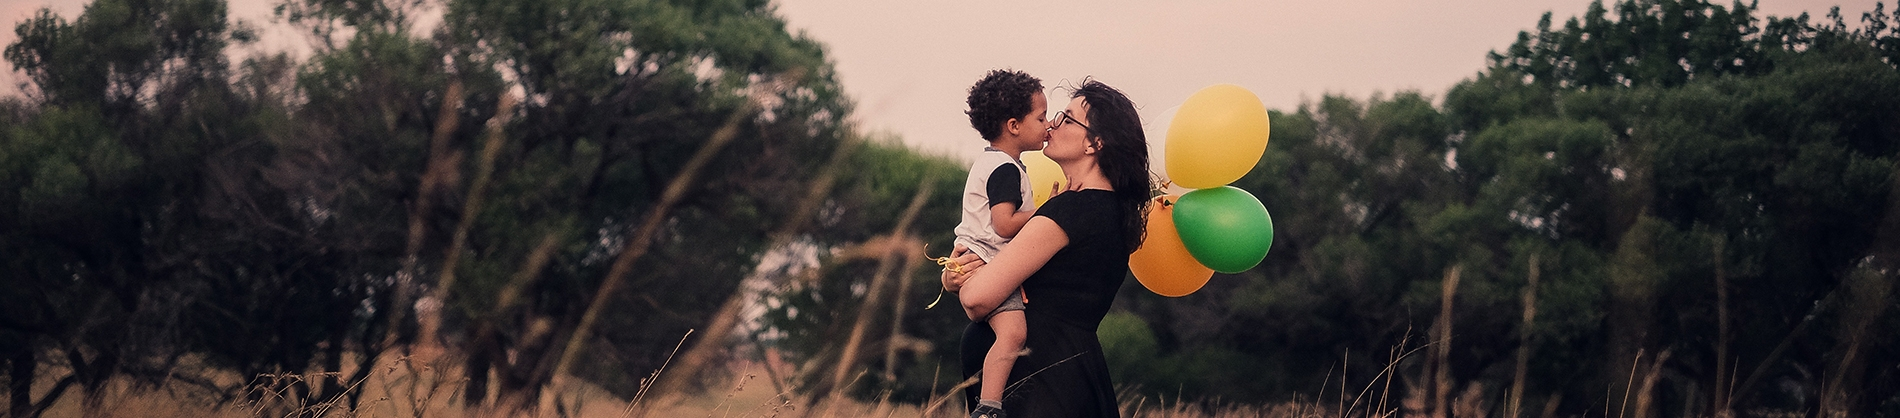 A mother and sun with balloons in a field